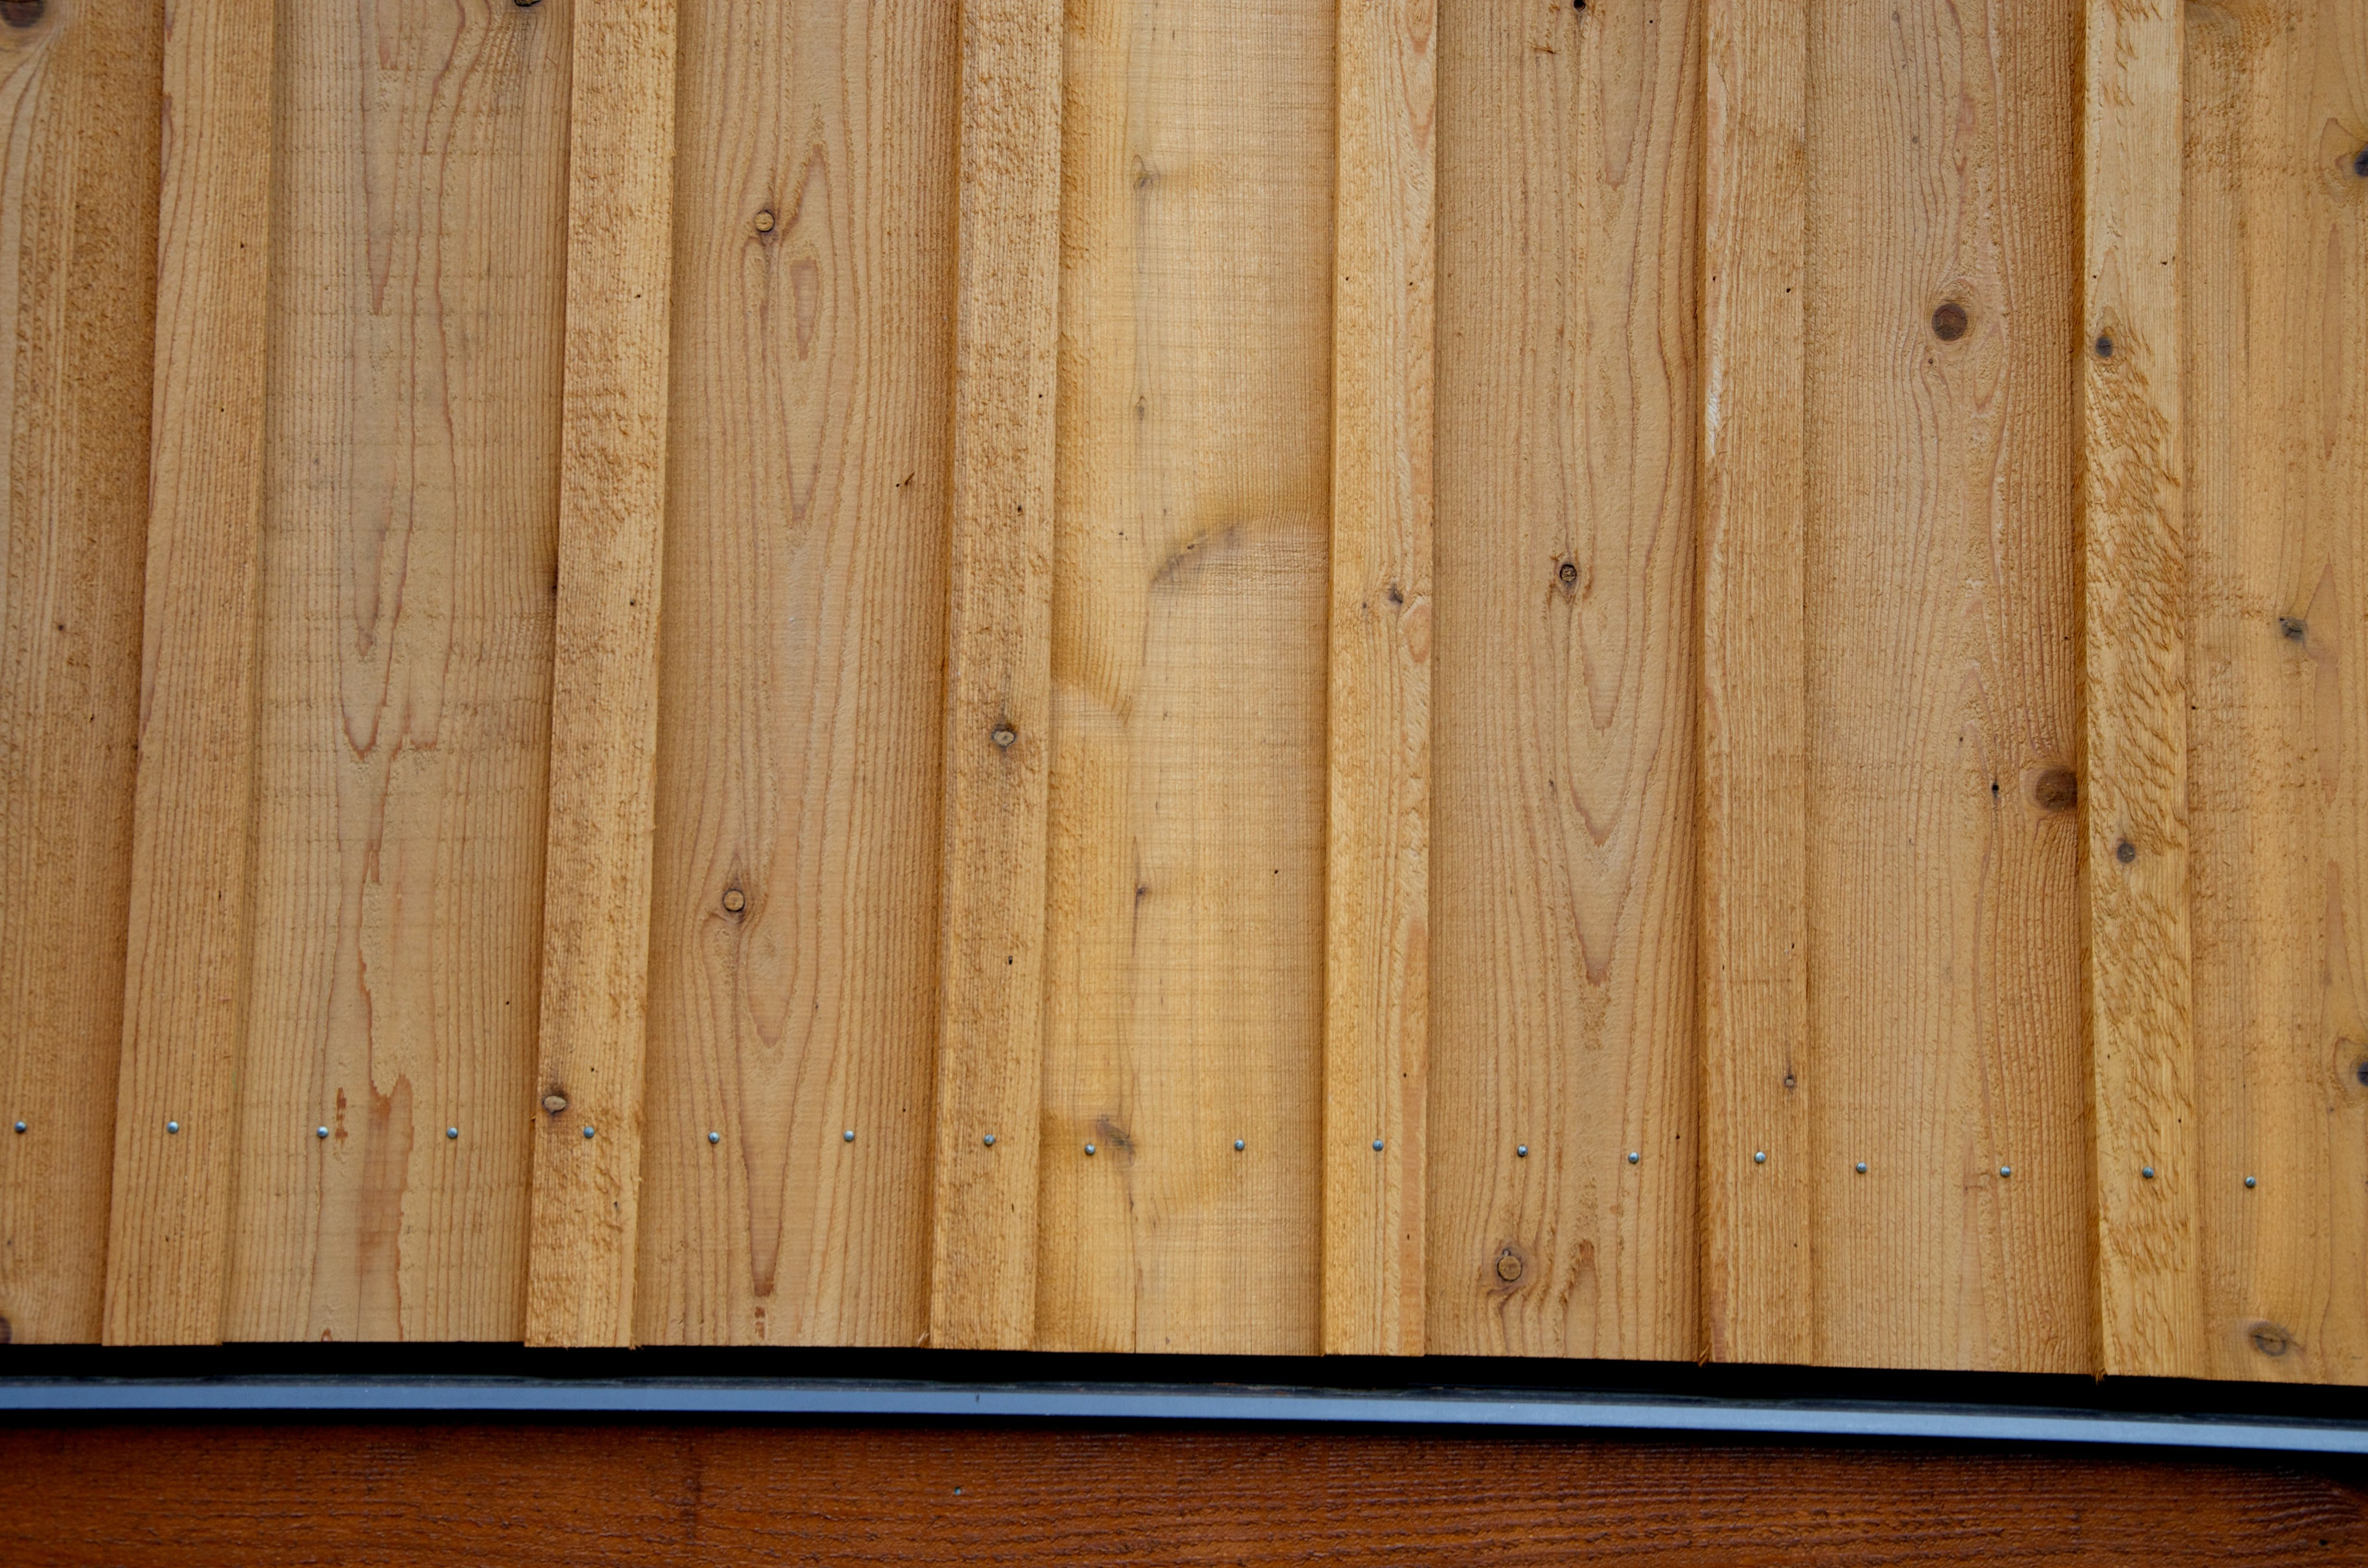 How To Set Up Board And Batten Or Exterior Siding Cuethat Wood Siding Board And Batten Siding Wood Siding Exterior